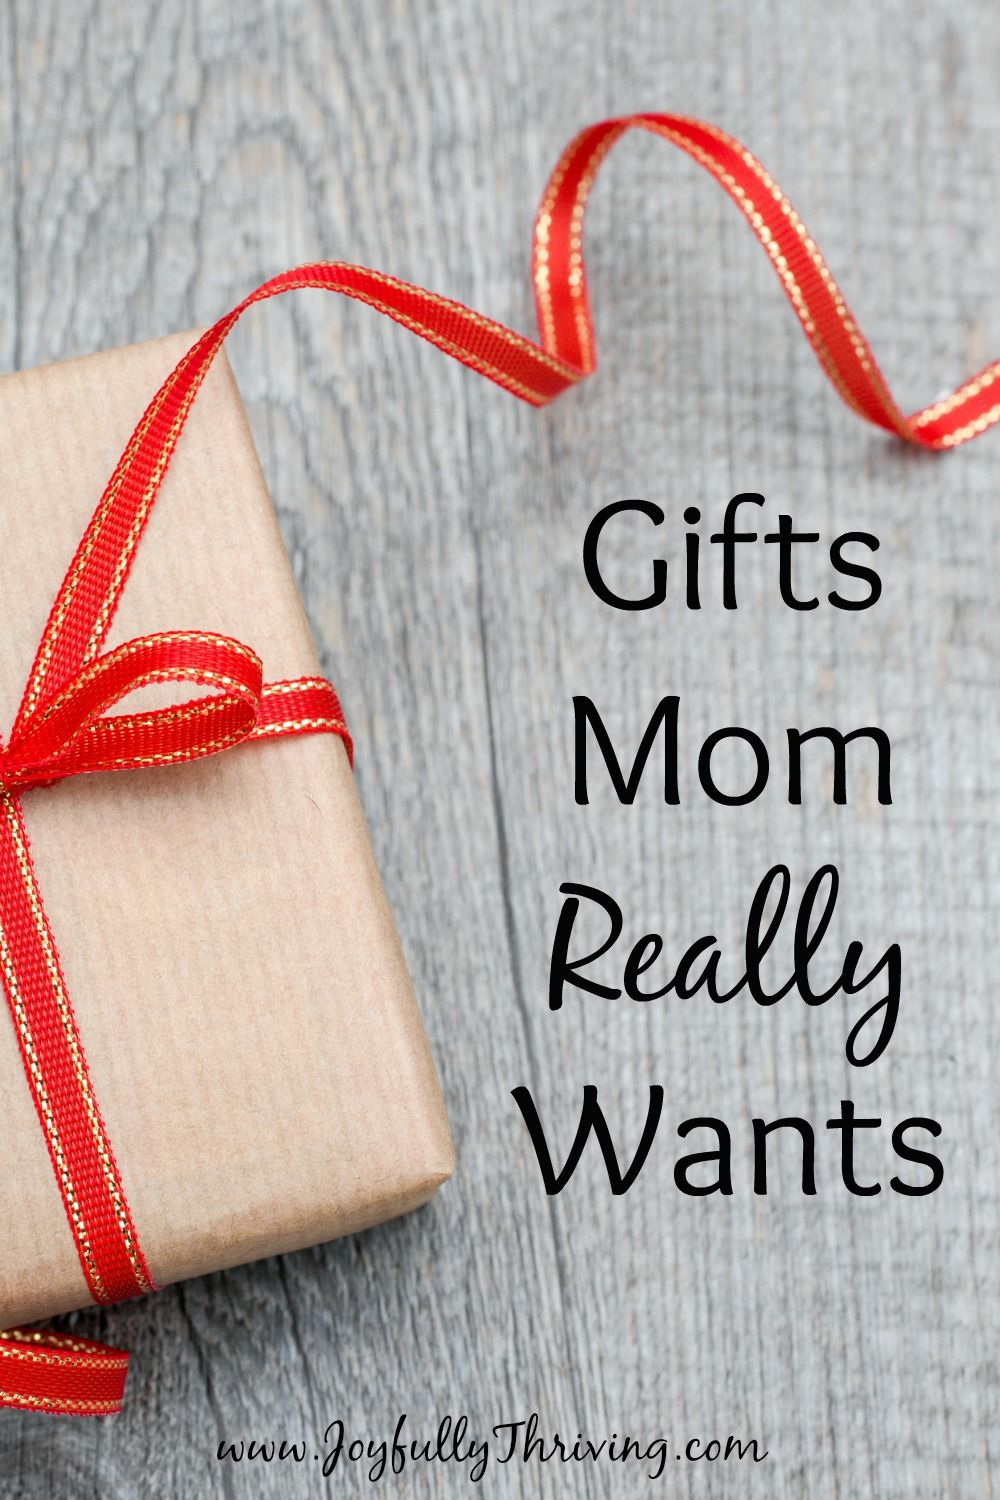 Gifts Mom Really Wants Christmas gifts for mom, Mom